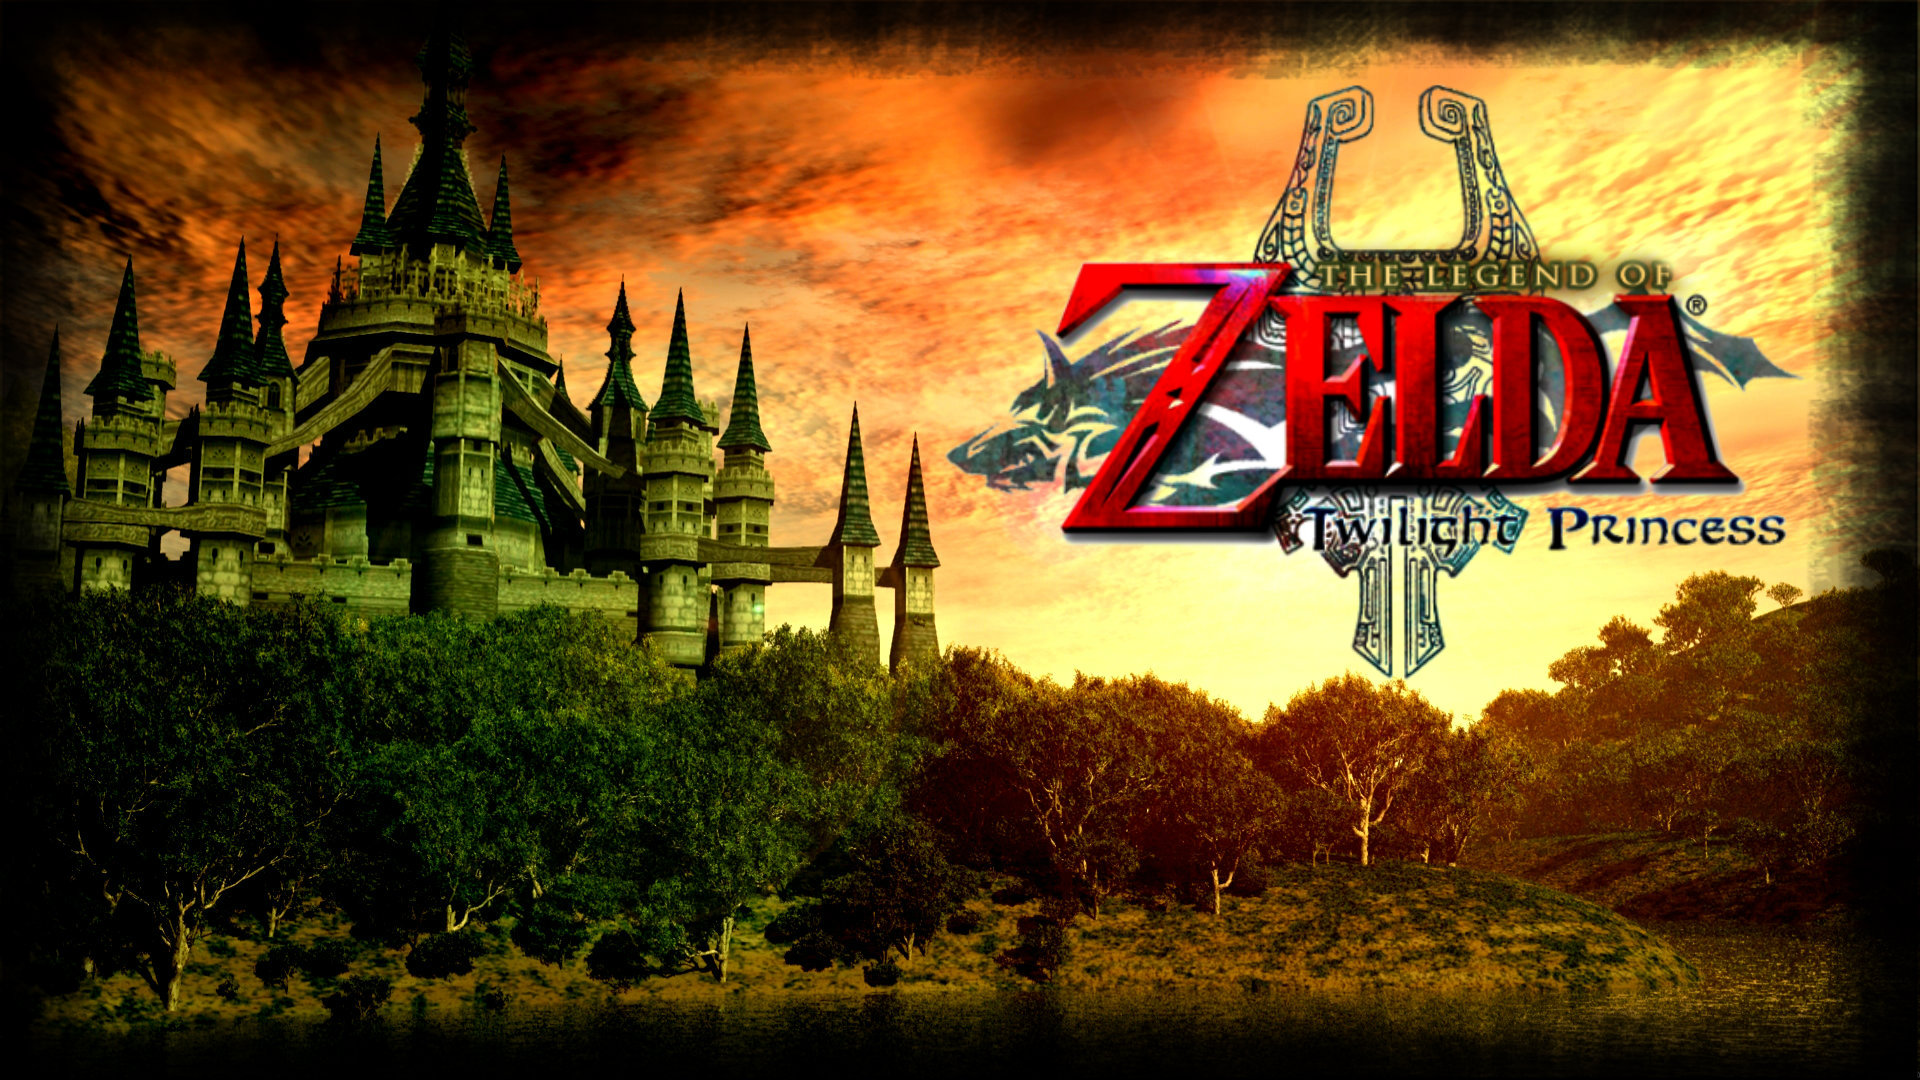 Zelda Twilight Princess Wallpaper by NaziZombiesKiller 1920x1080